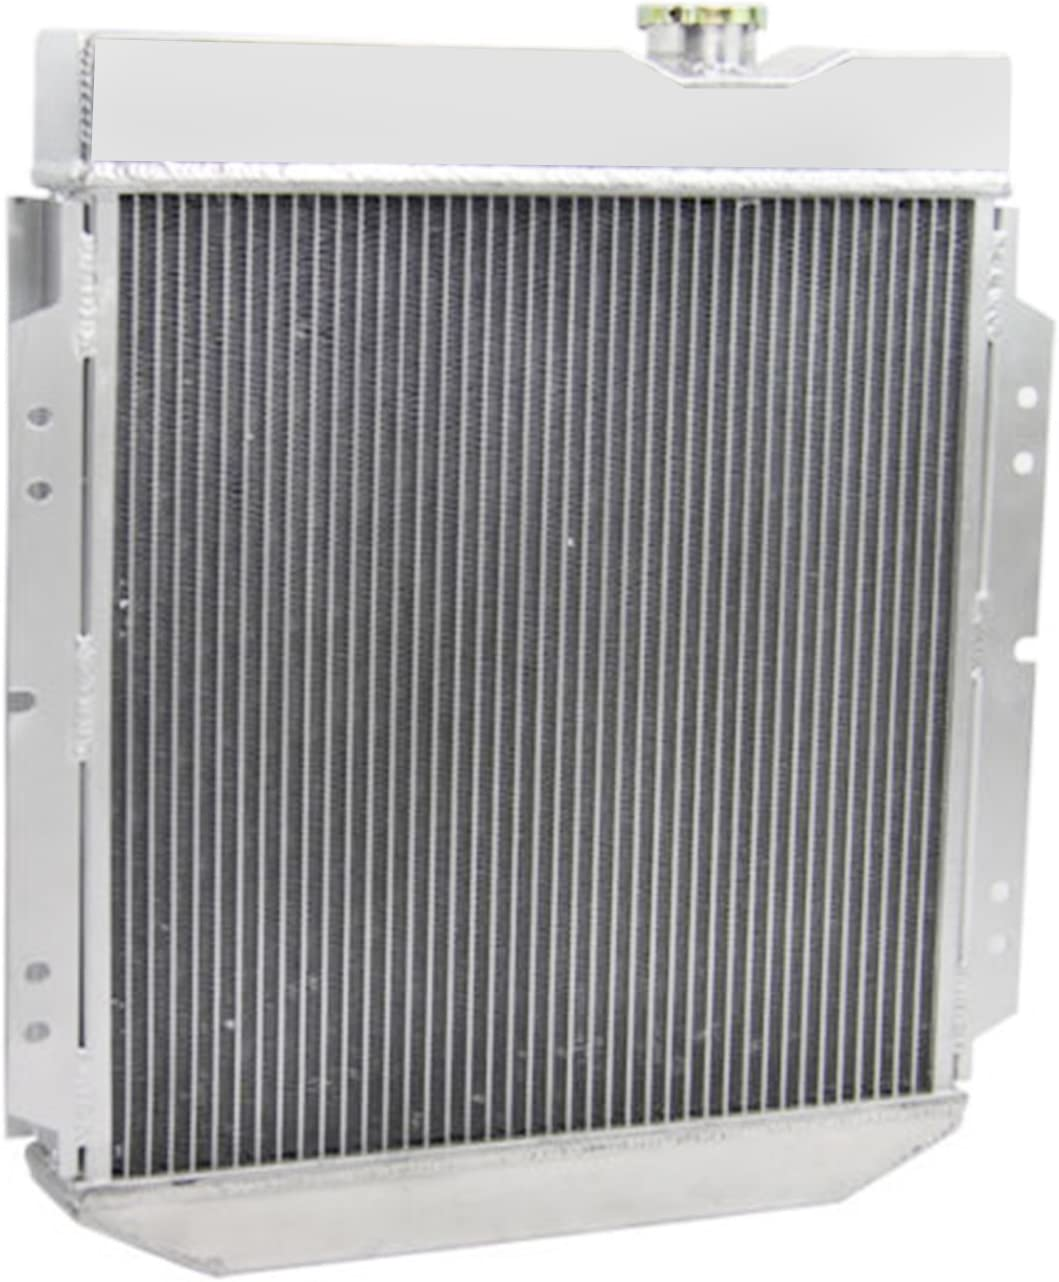 4 Row Core All Aluminum Radiator for 1963-1966 64 65 Ford Mustang//Falcon OzCoolingParts 63-66 Ford /& Mercury Radiator V8 260 289 AT//MT Mercury Comet